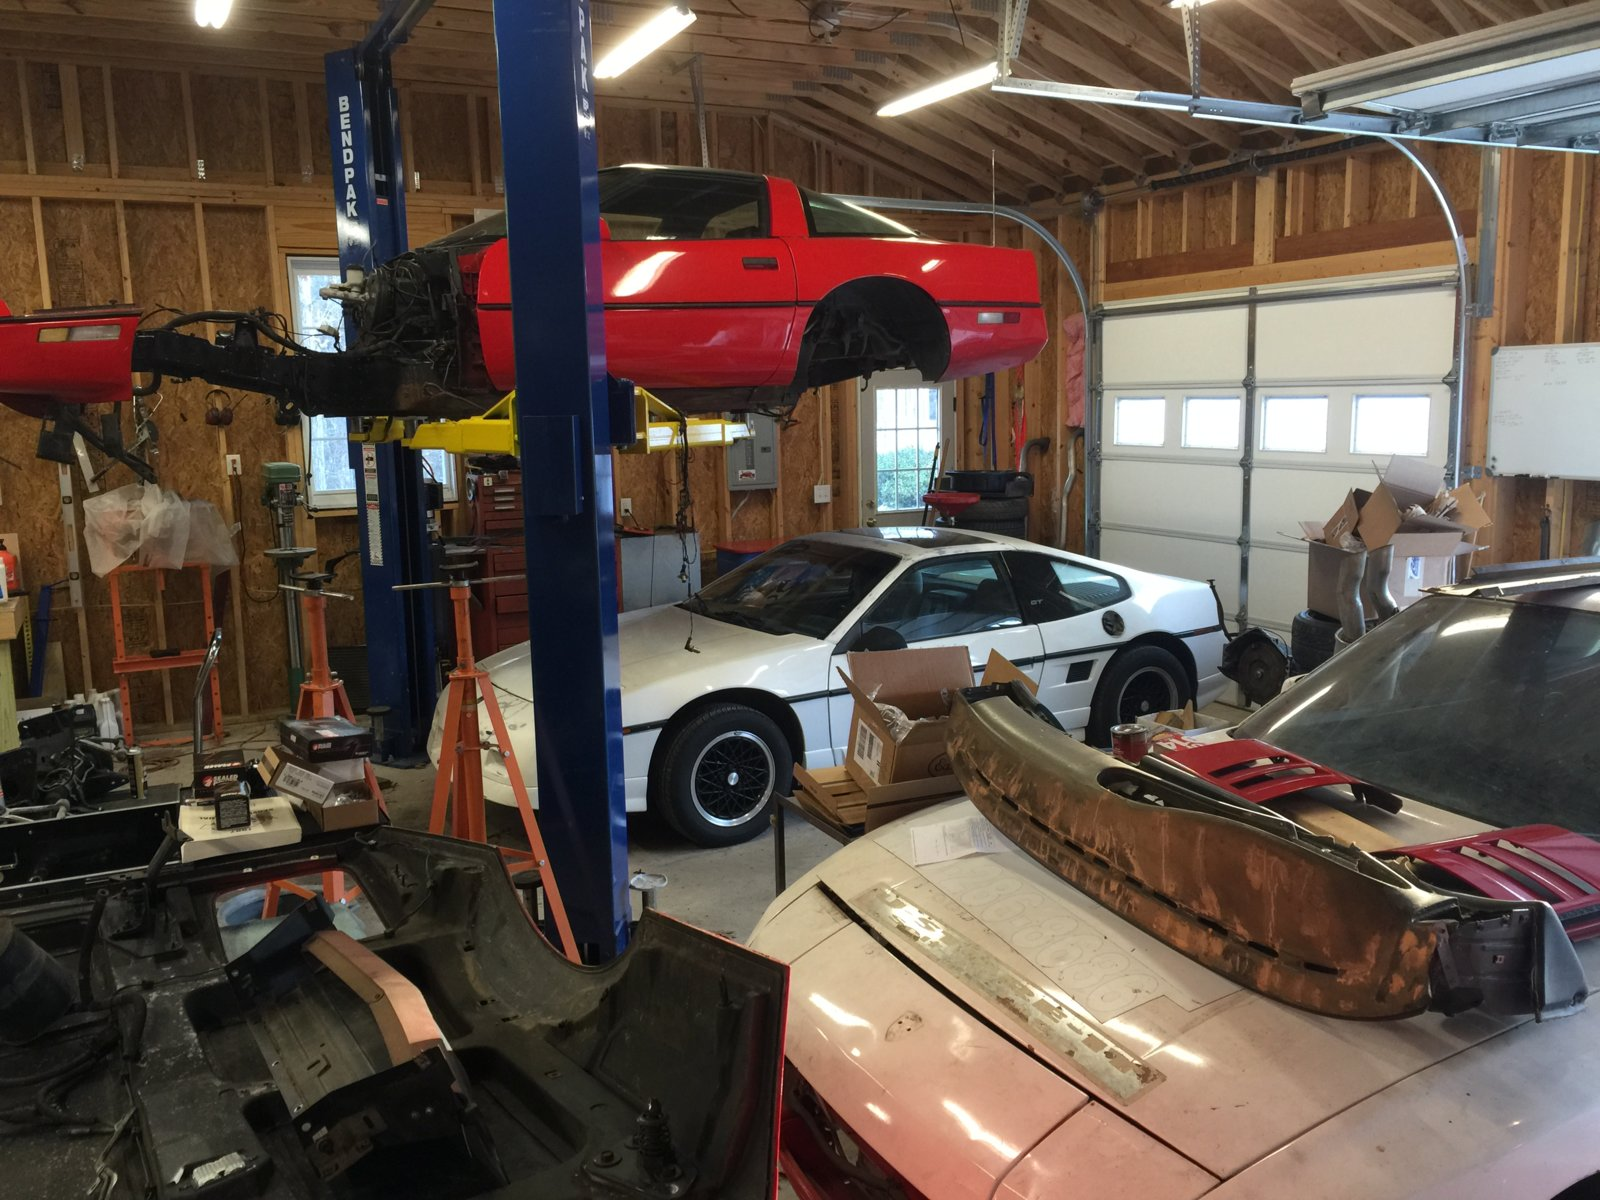 Who has car lift in personal garage | 2015+ S550 Mustang